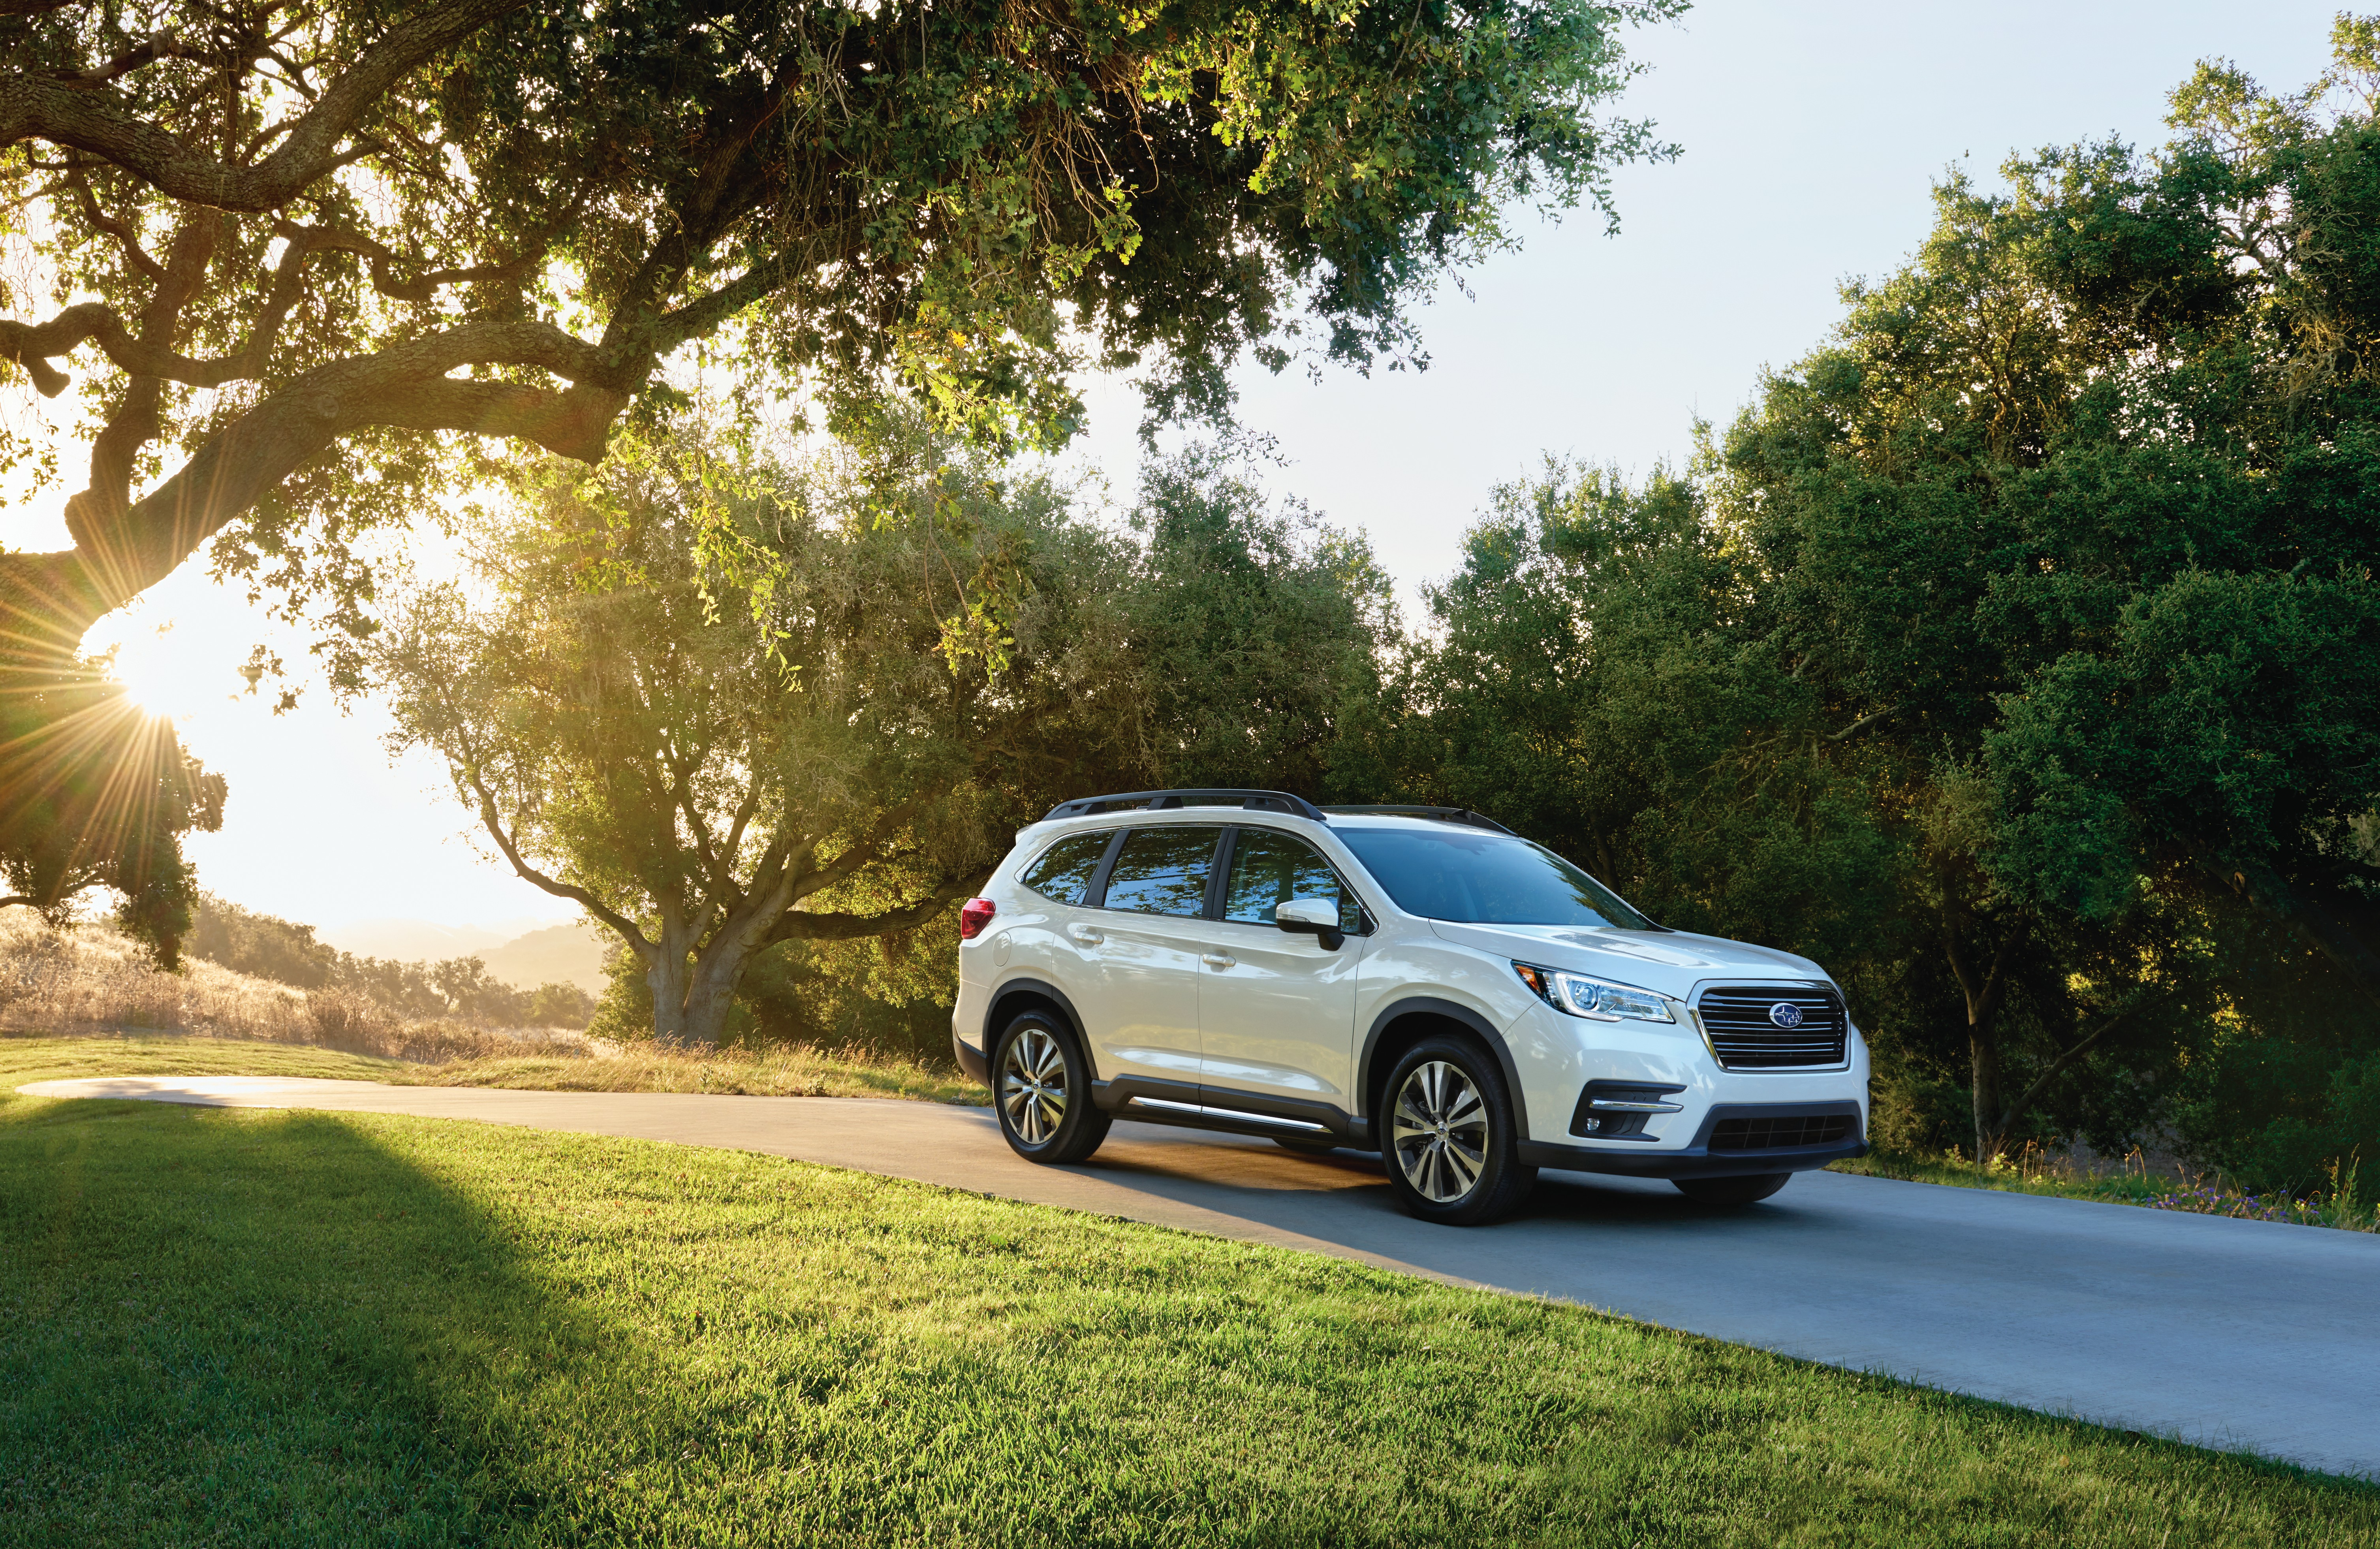 Subaru Announces Pricing on All-new 2019 Ascent Three-row SUV